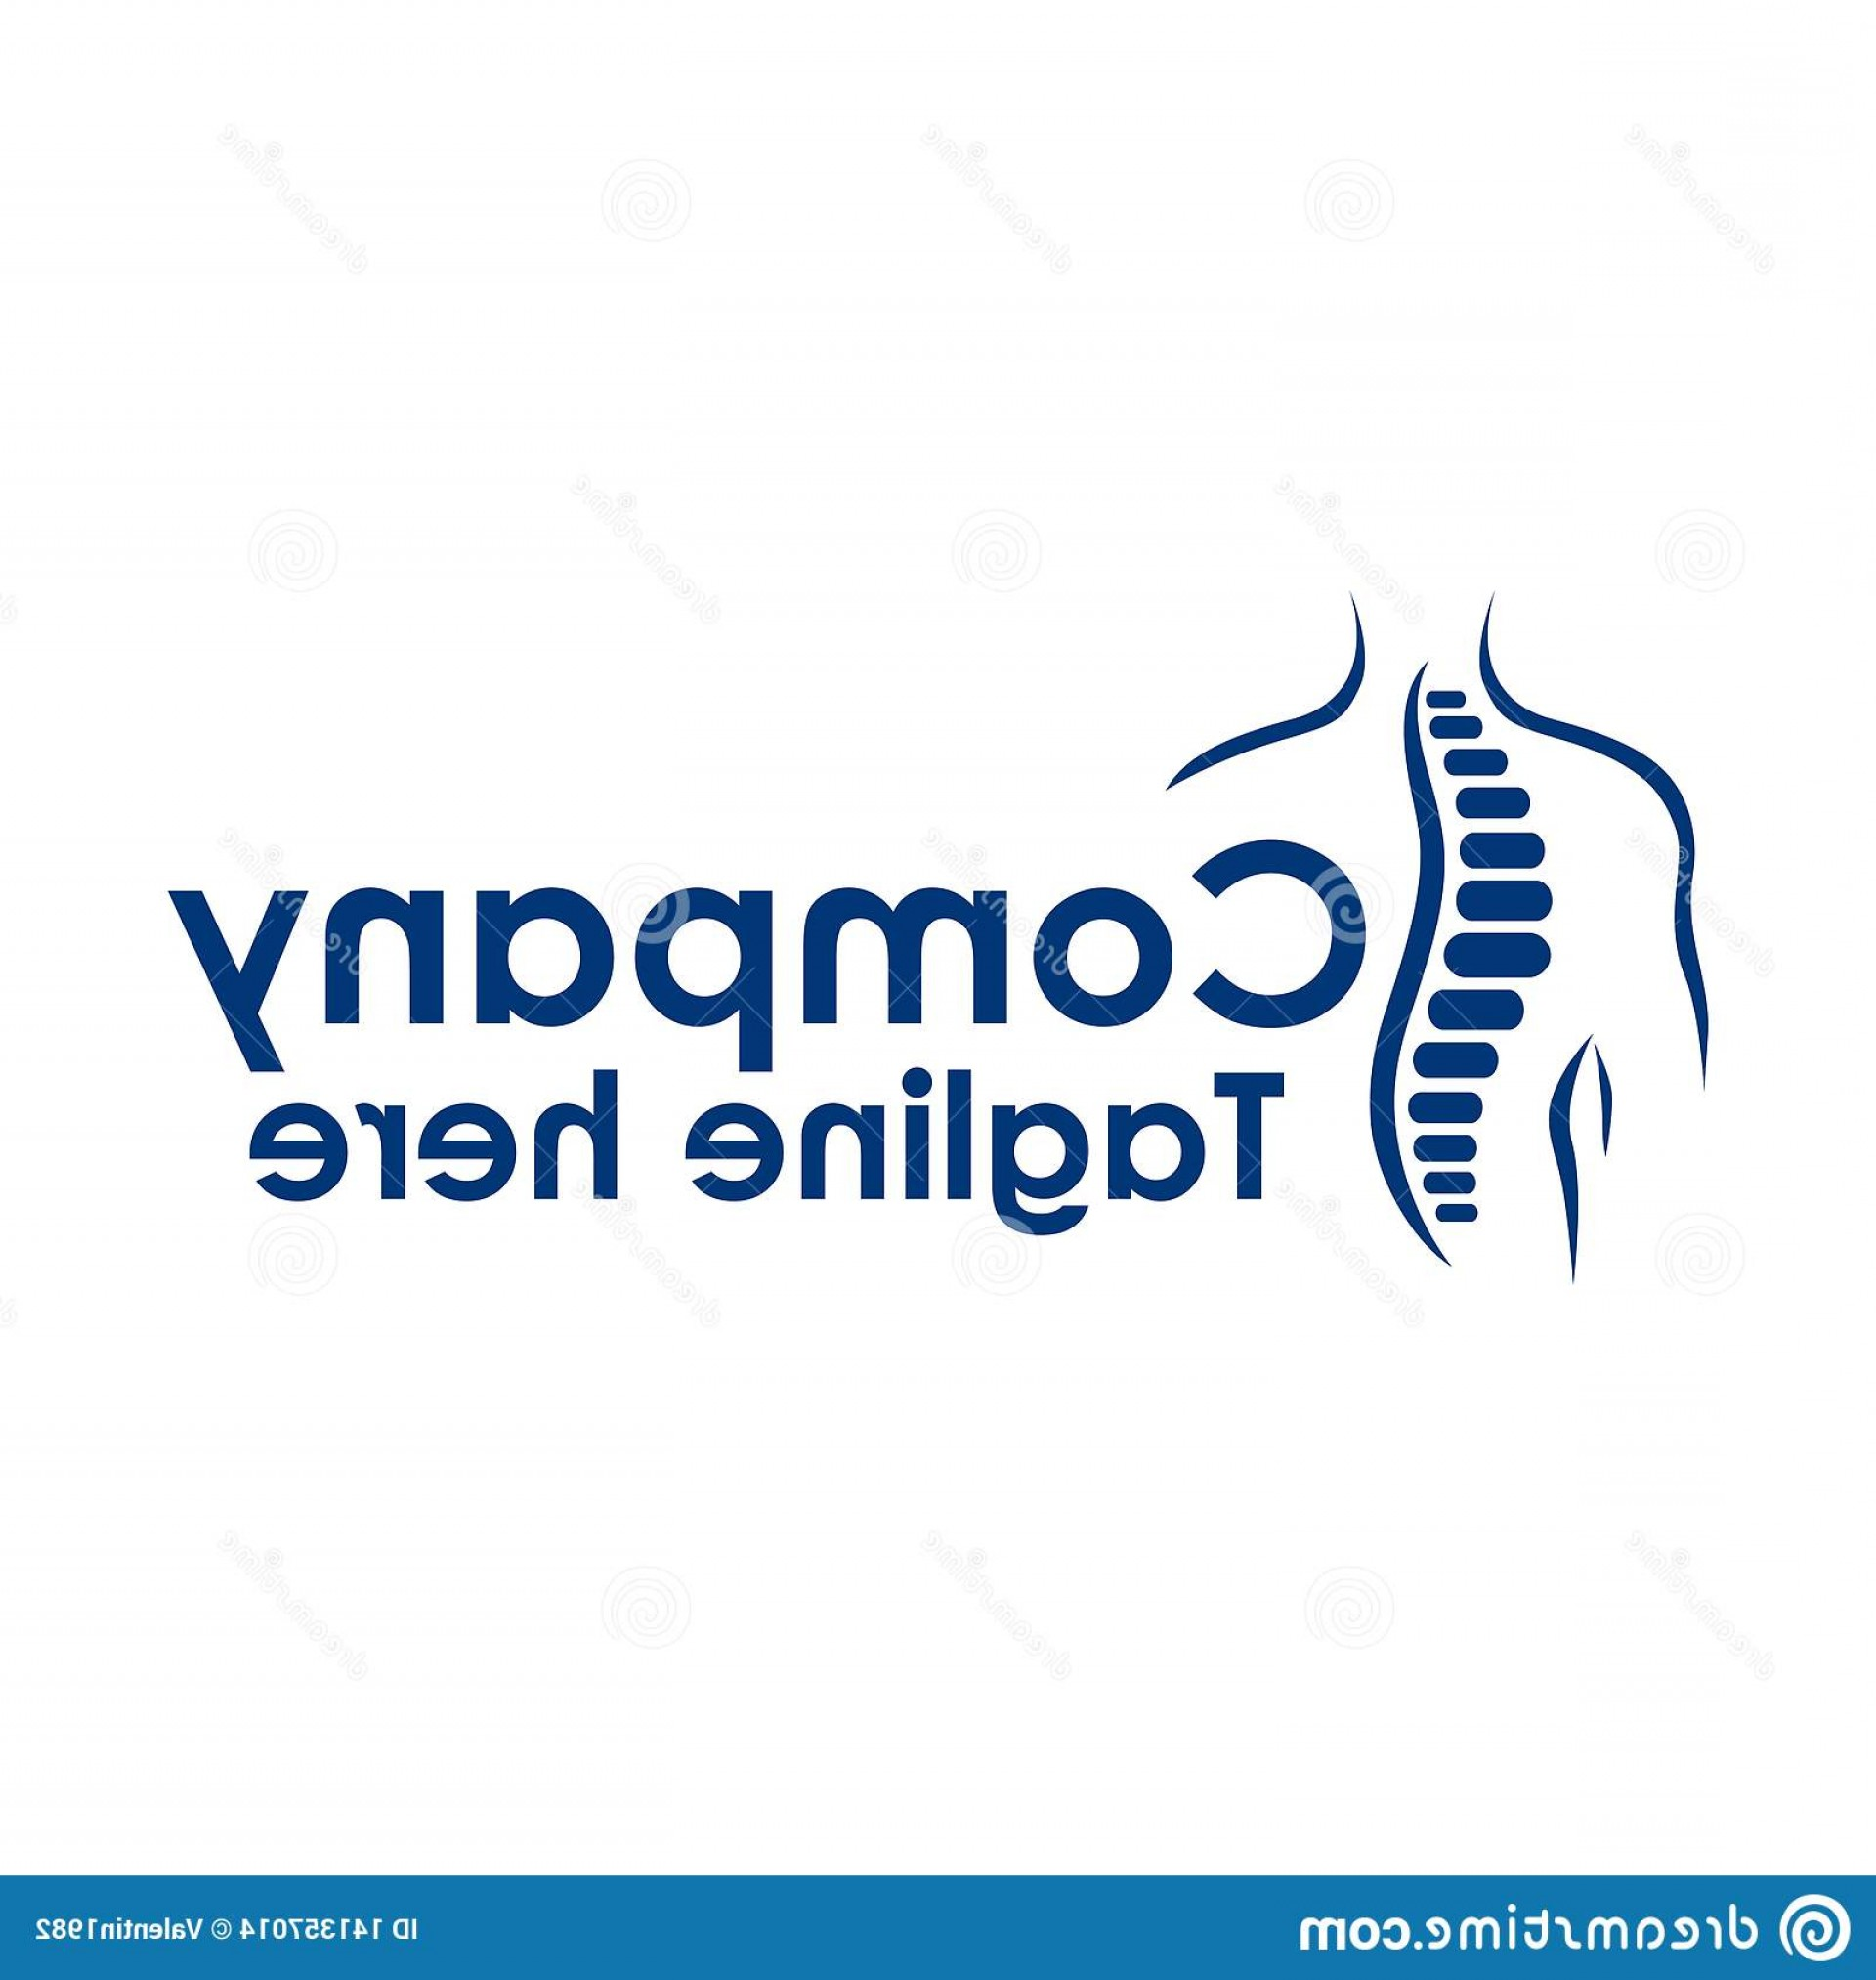 File Formats Vector Artwork: Heropractic Spine Logo File Format Can Be Scaled To Any Size Heropractic Spine Logo Vector Illustration Image